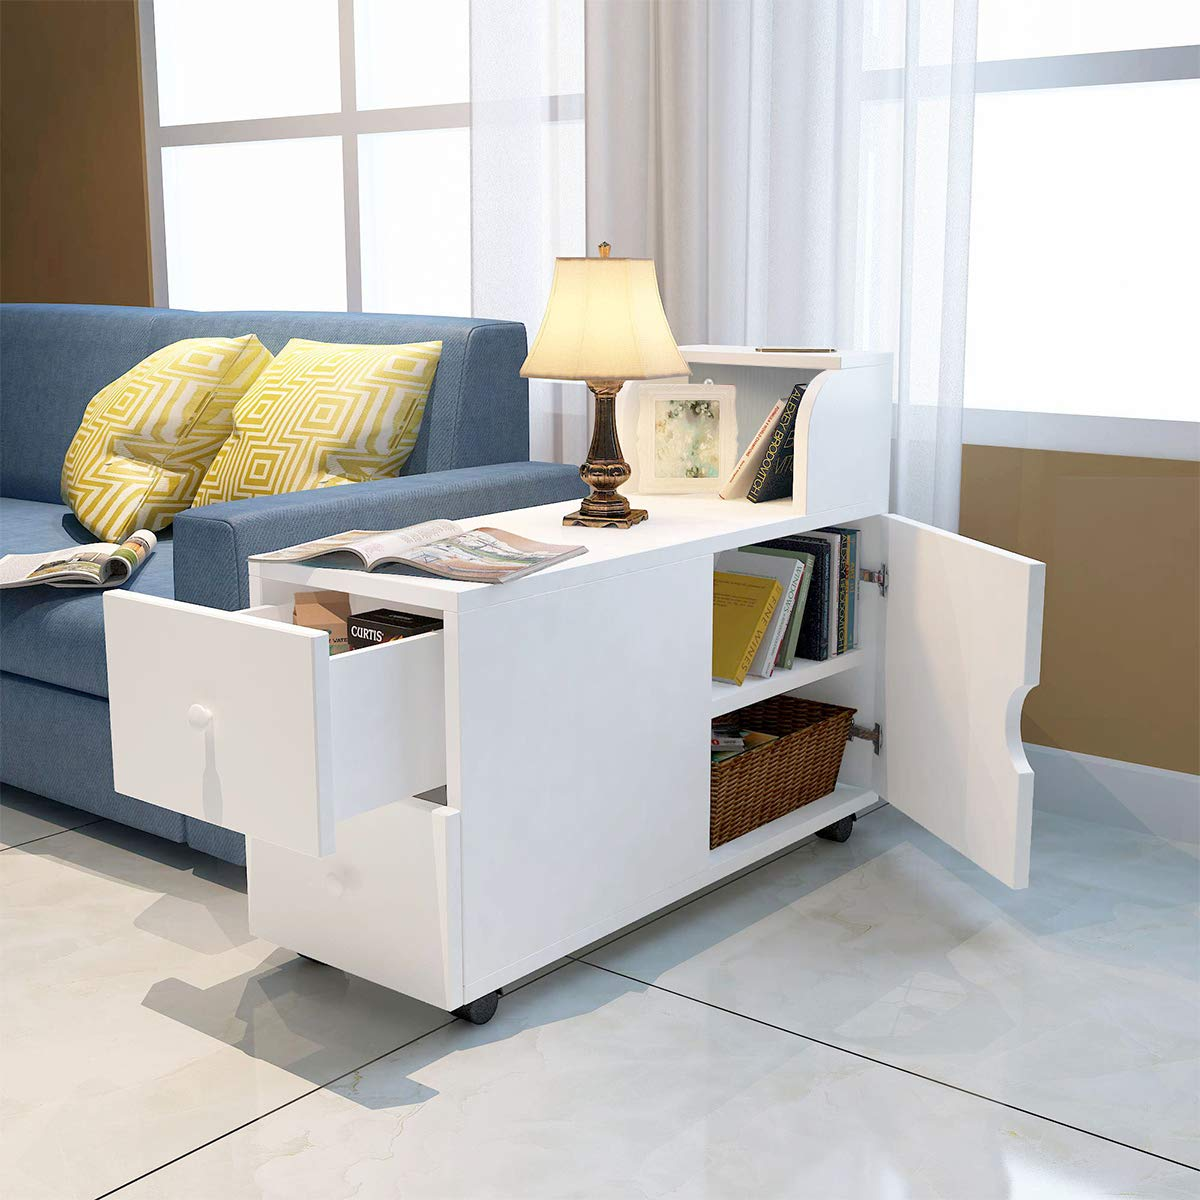 Modern End Table, White Side Table Chair Side Table Nightstand with Storage  Shelf Bookshelf Drawer for Living Room Bedroom Office with Wheels